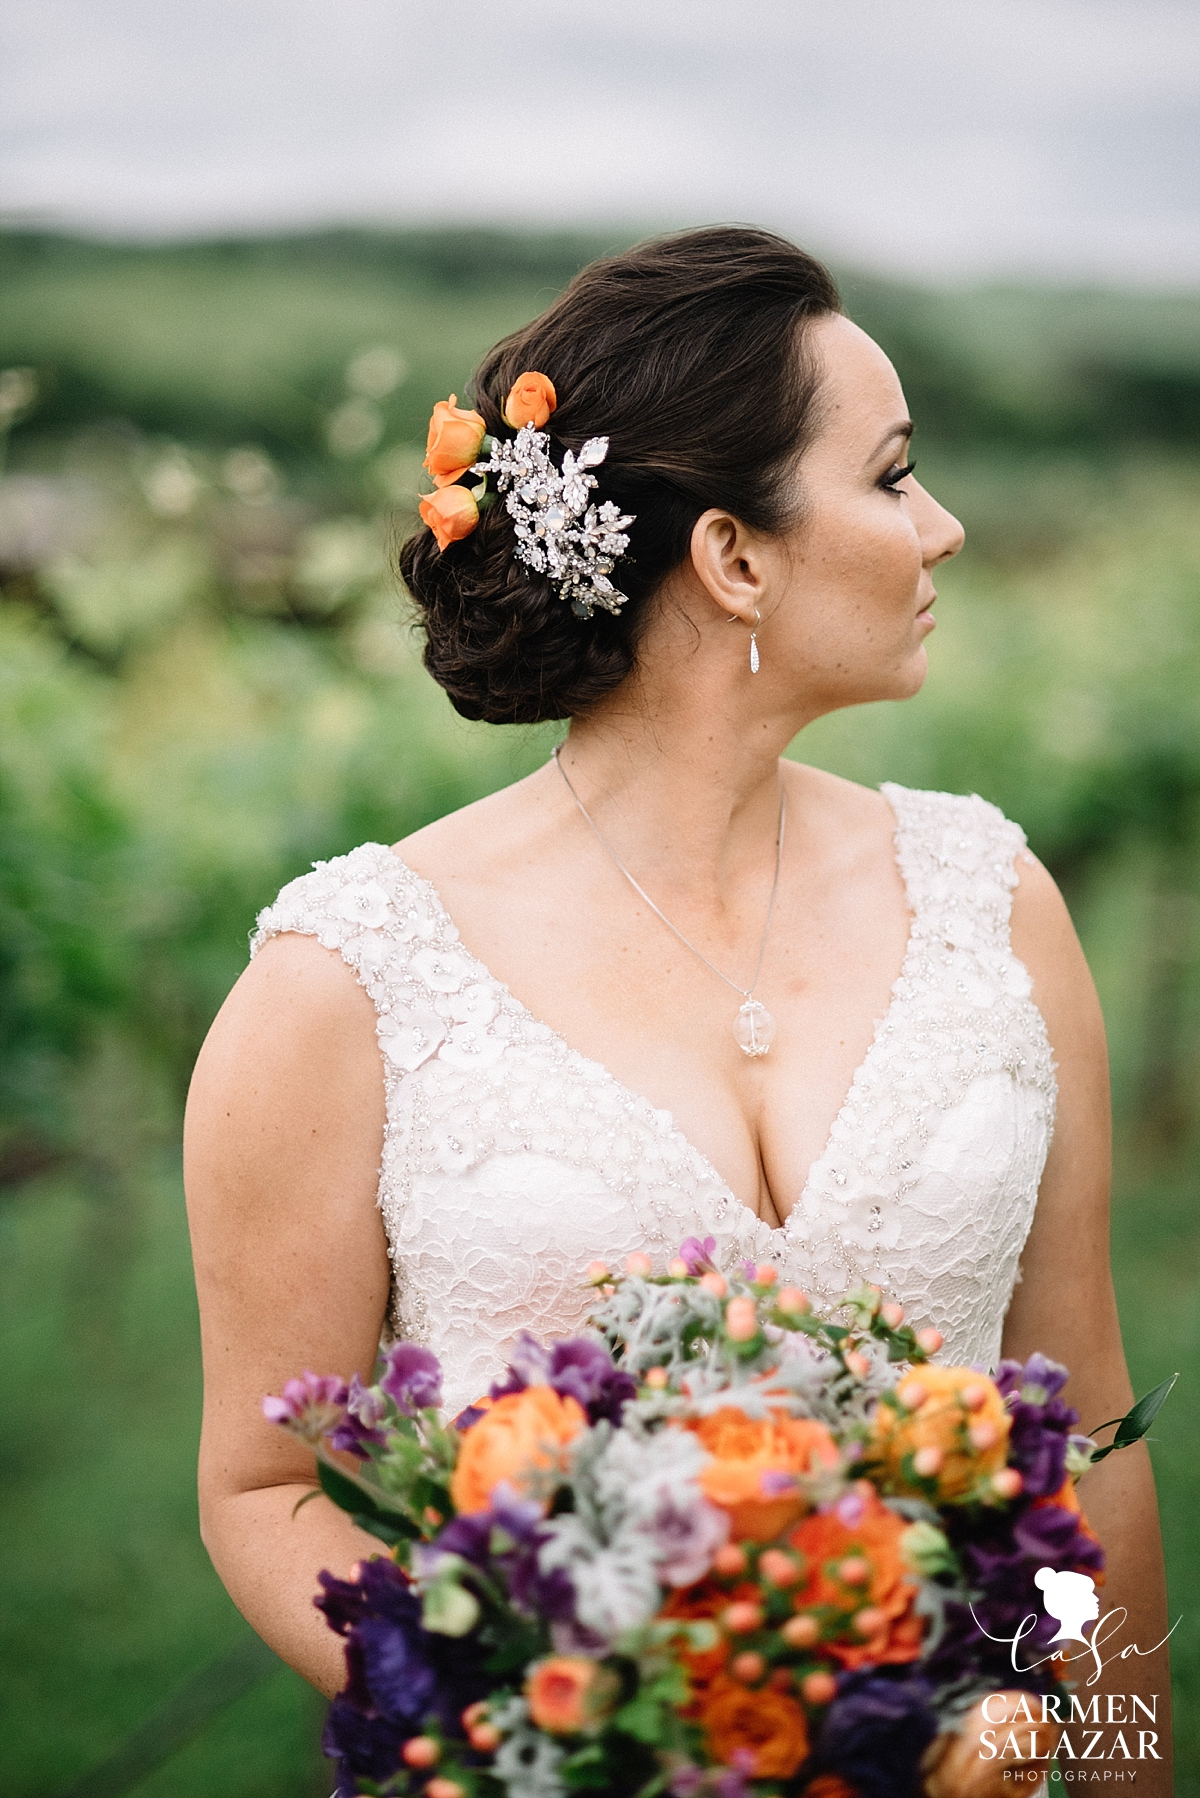 Fall wedding florals - Carmen Salazar